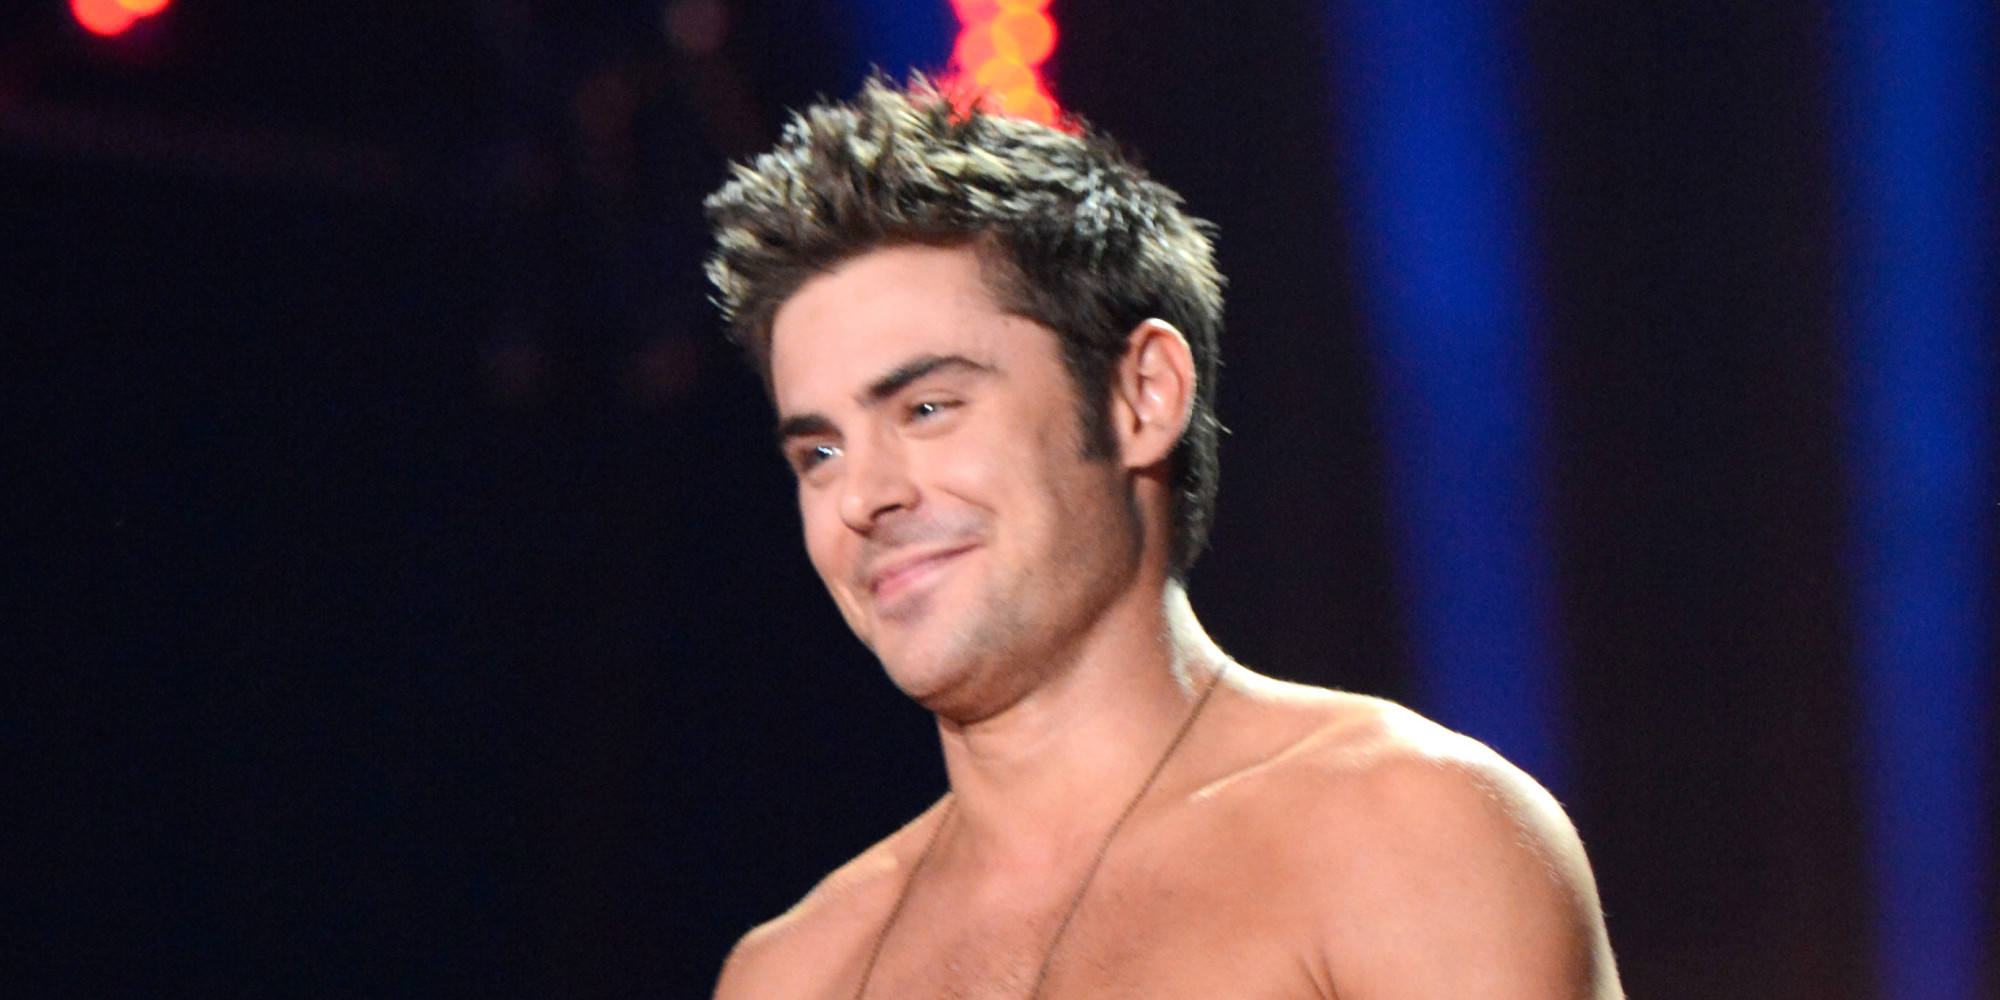 Zac Efron Took His Shirt Off At The MTV Movie Awards ... Zac Efron Movies